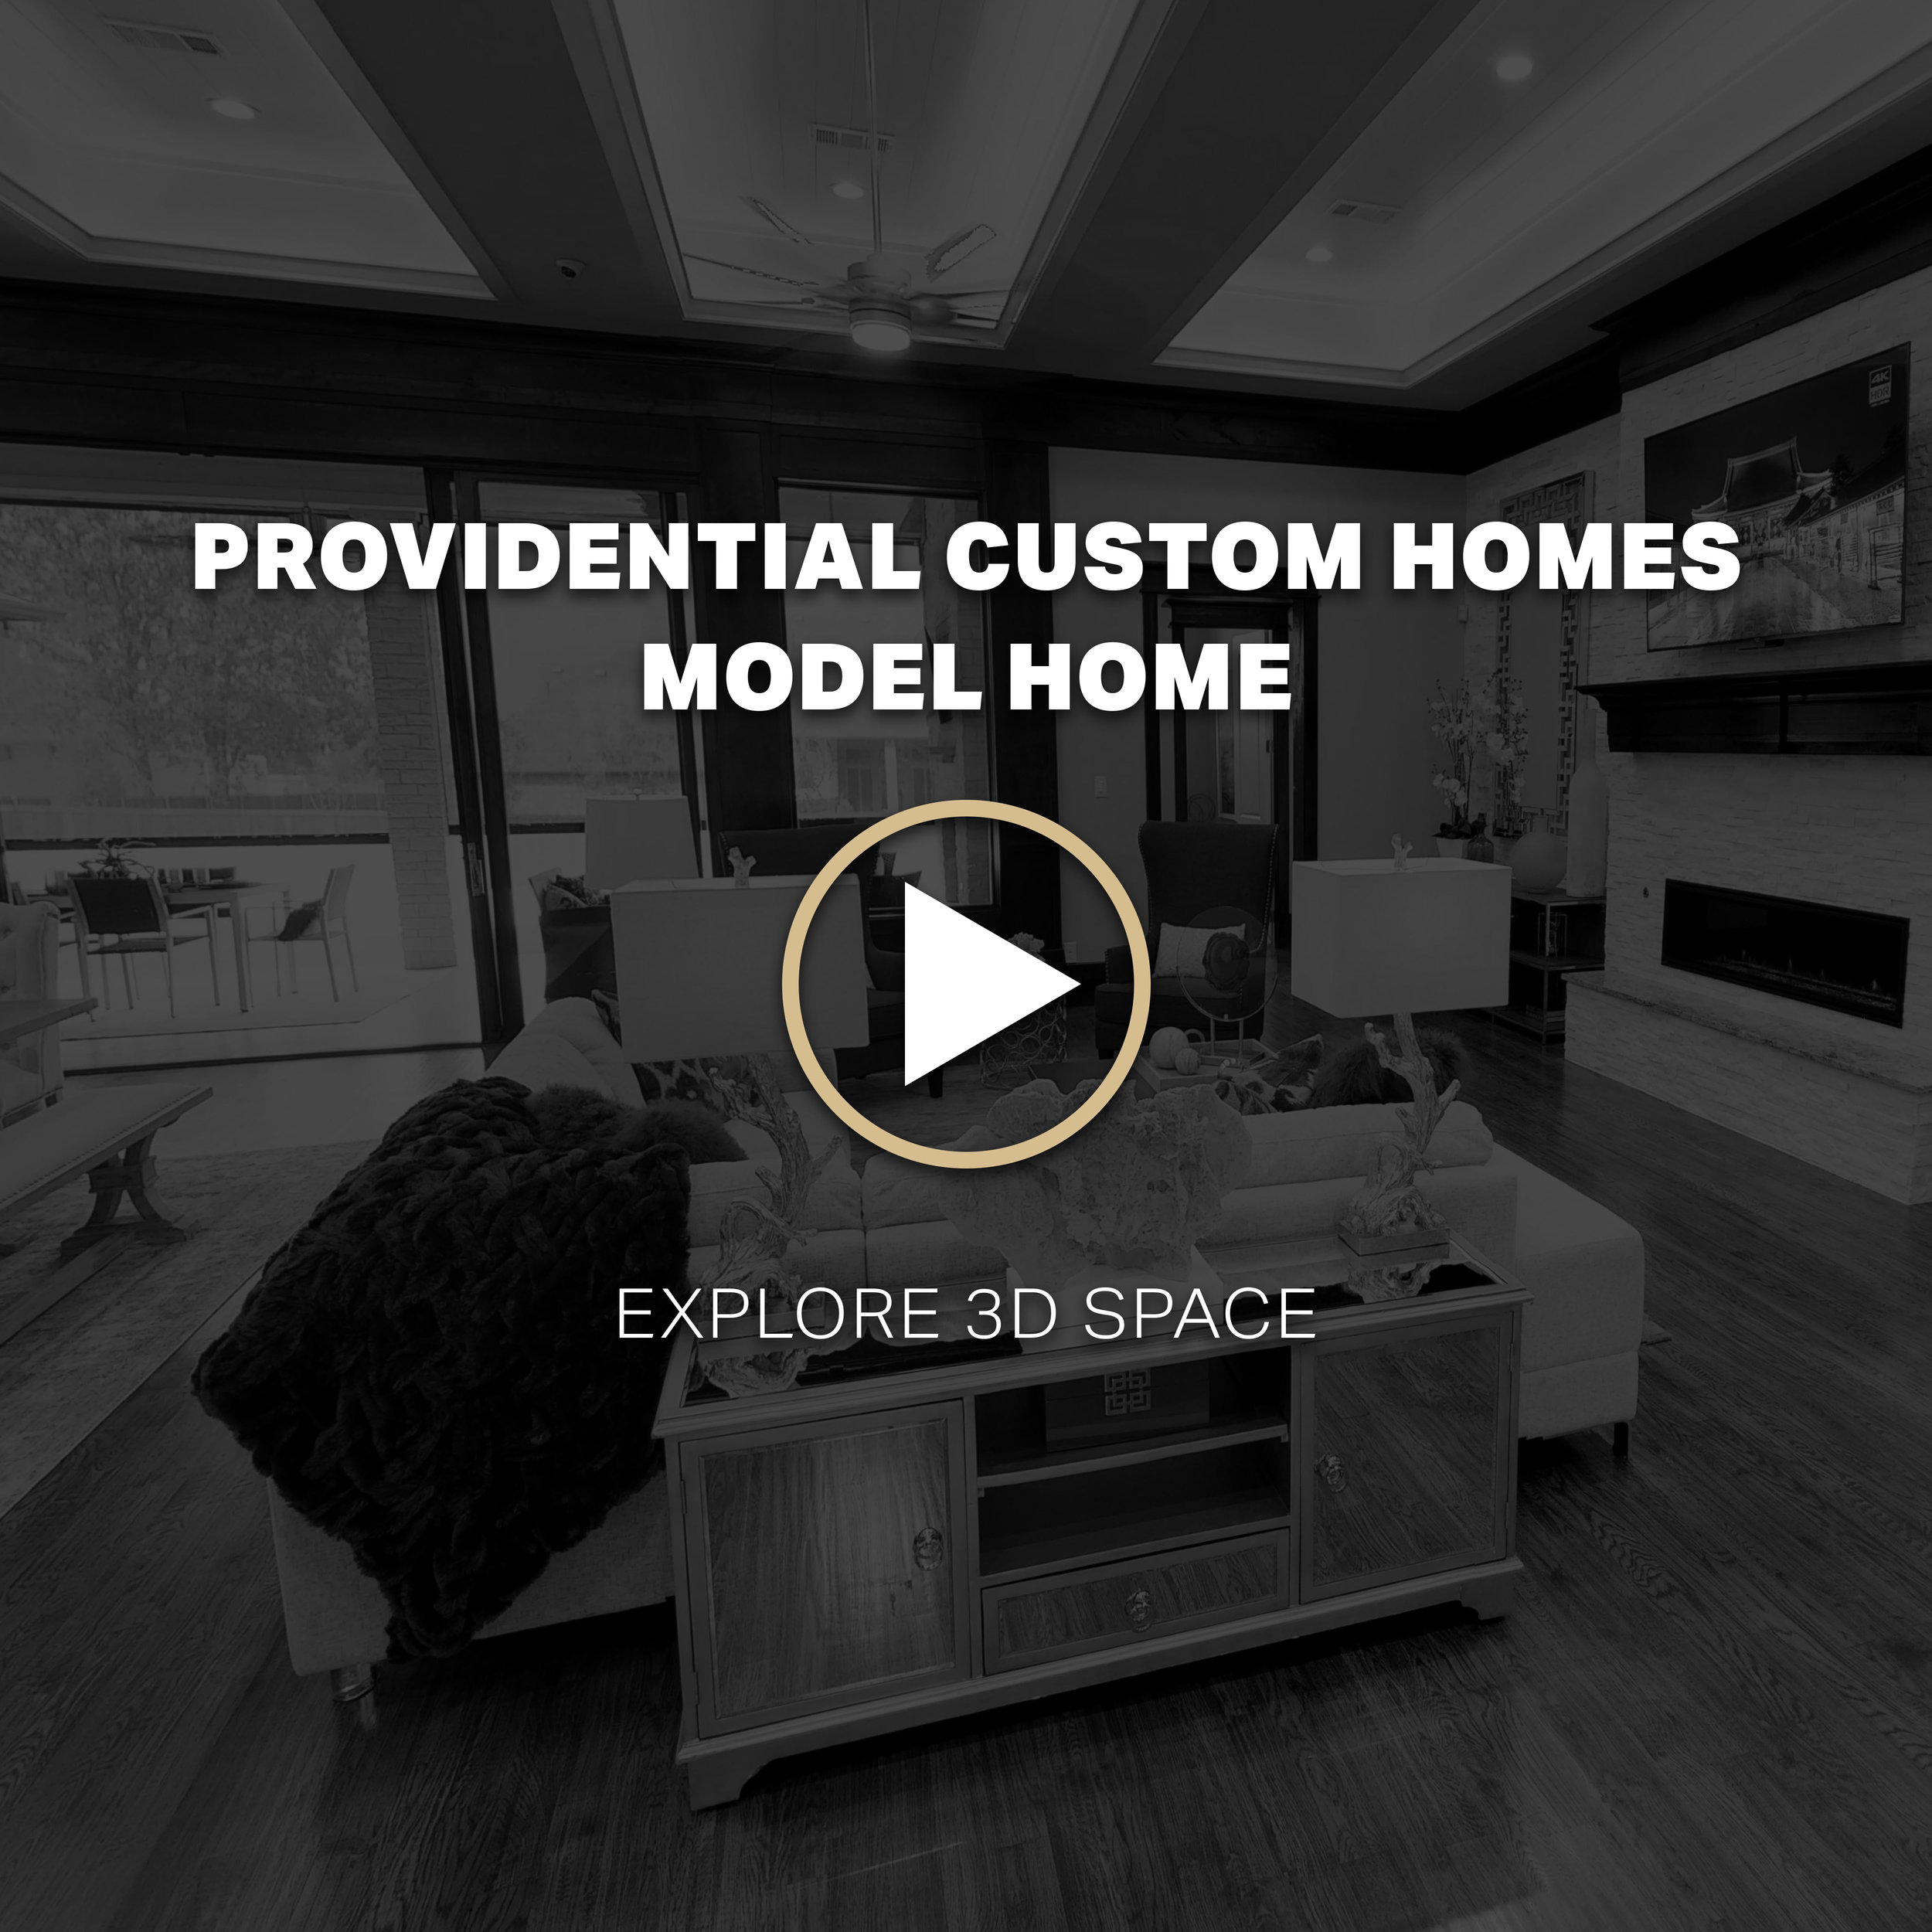 Providential Custom Homes VR Tour.jpg